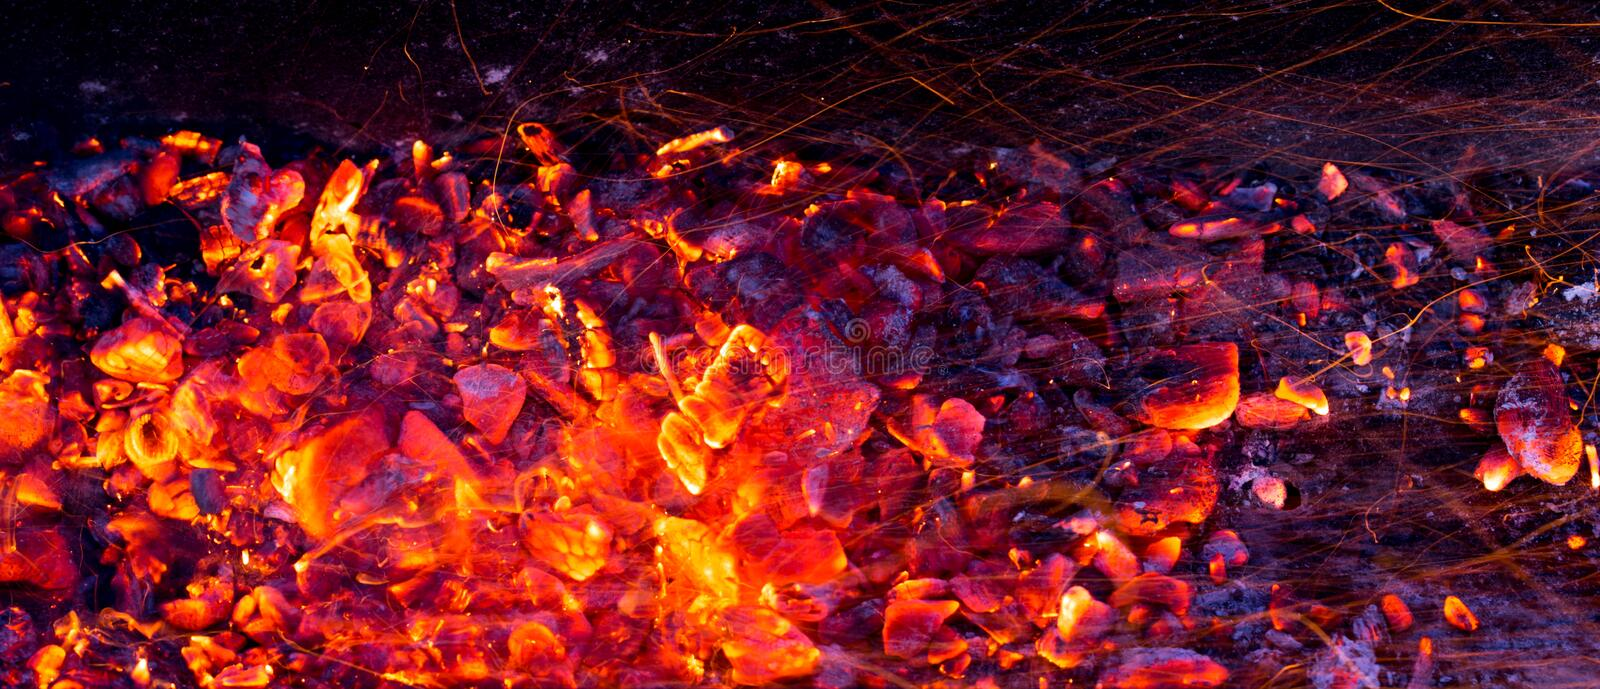 Burning charcoal as background stock image